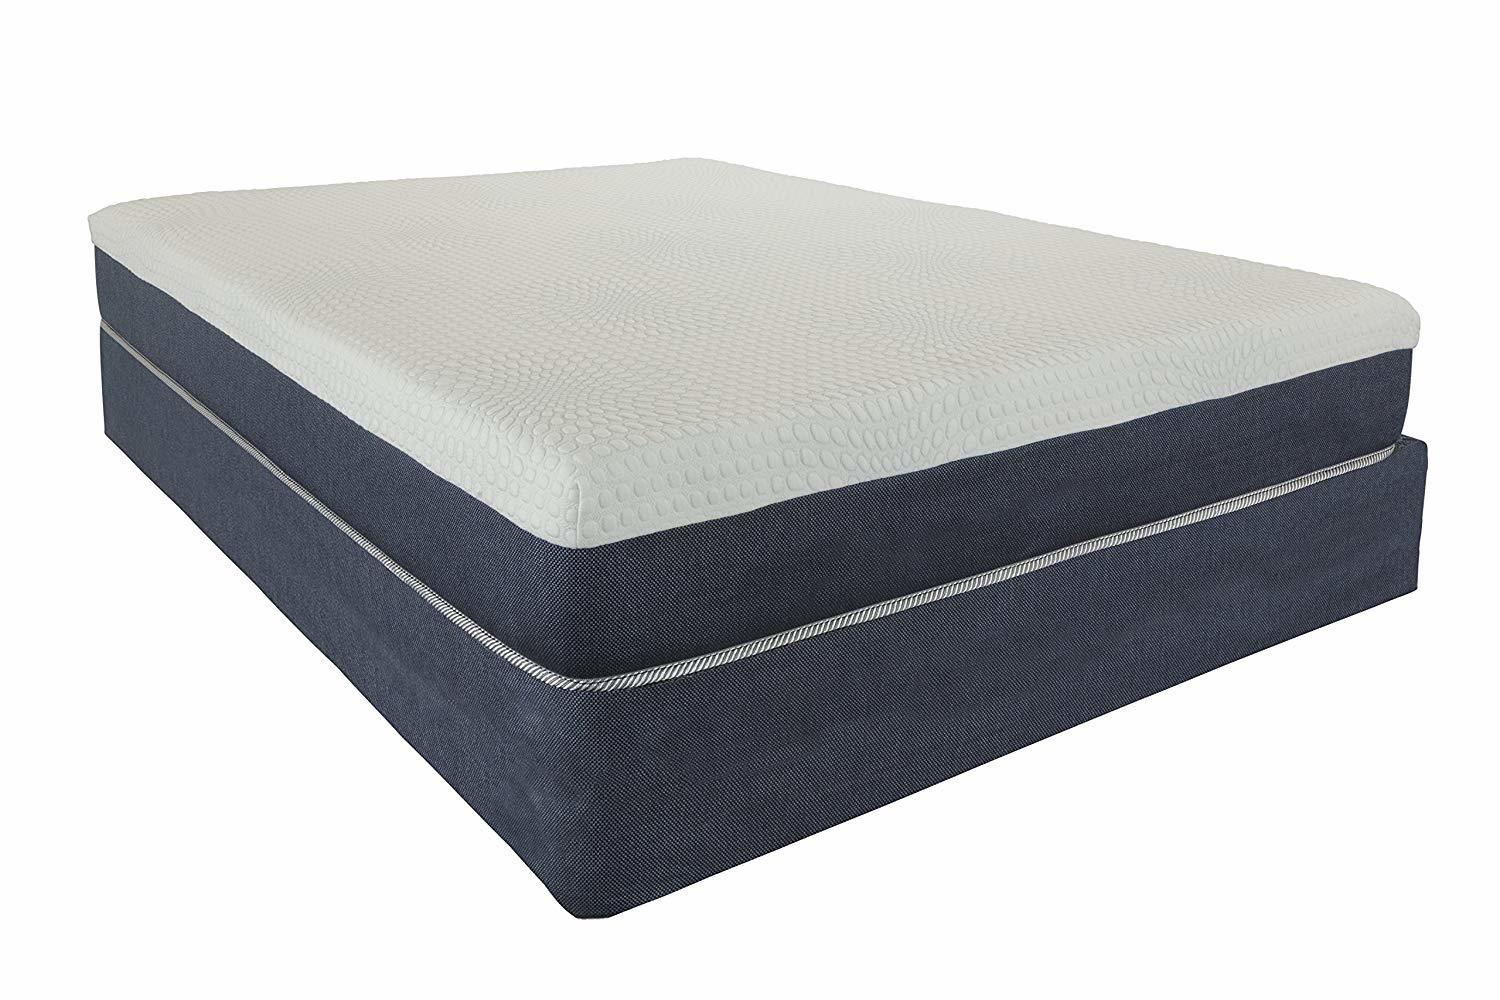 Englander memory foam- Best Innerspring Mattress